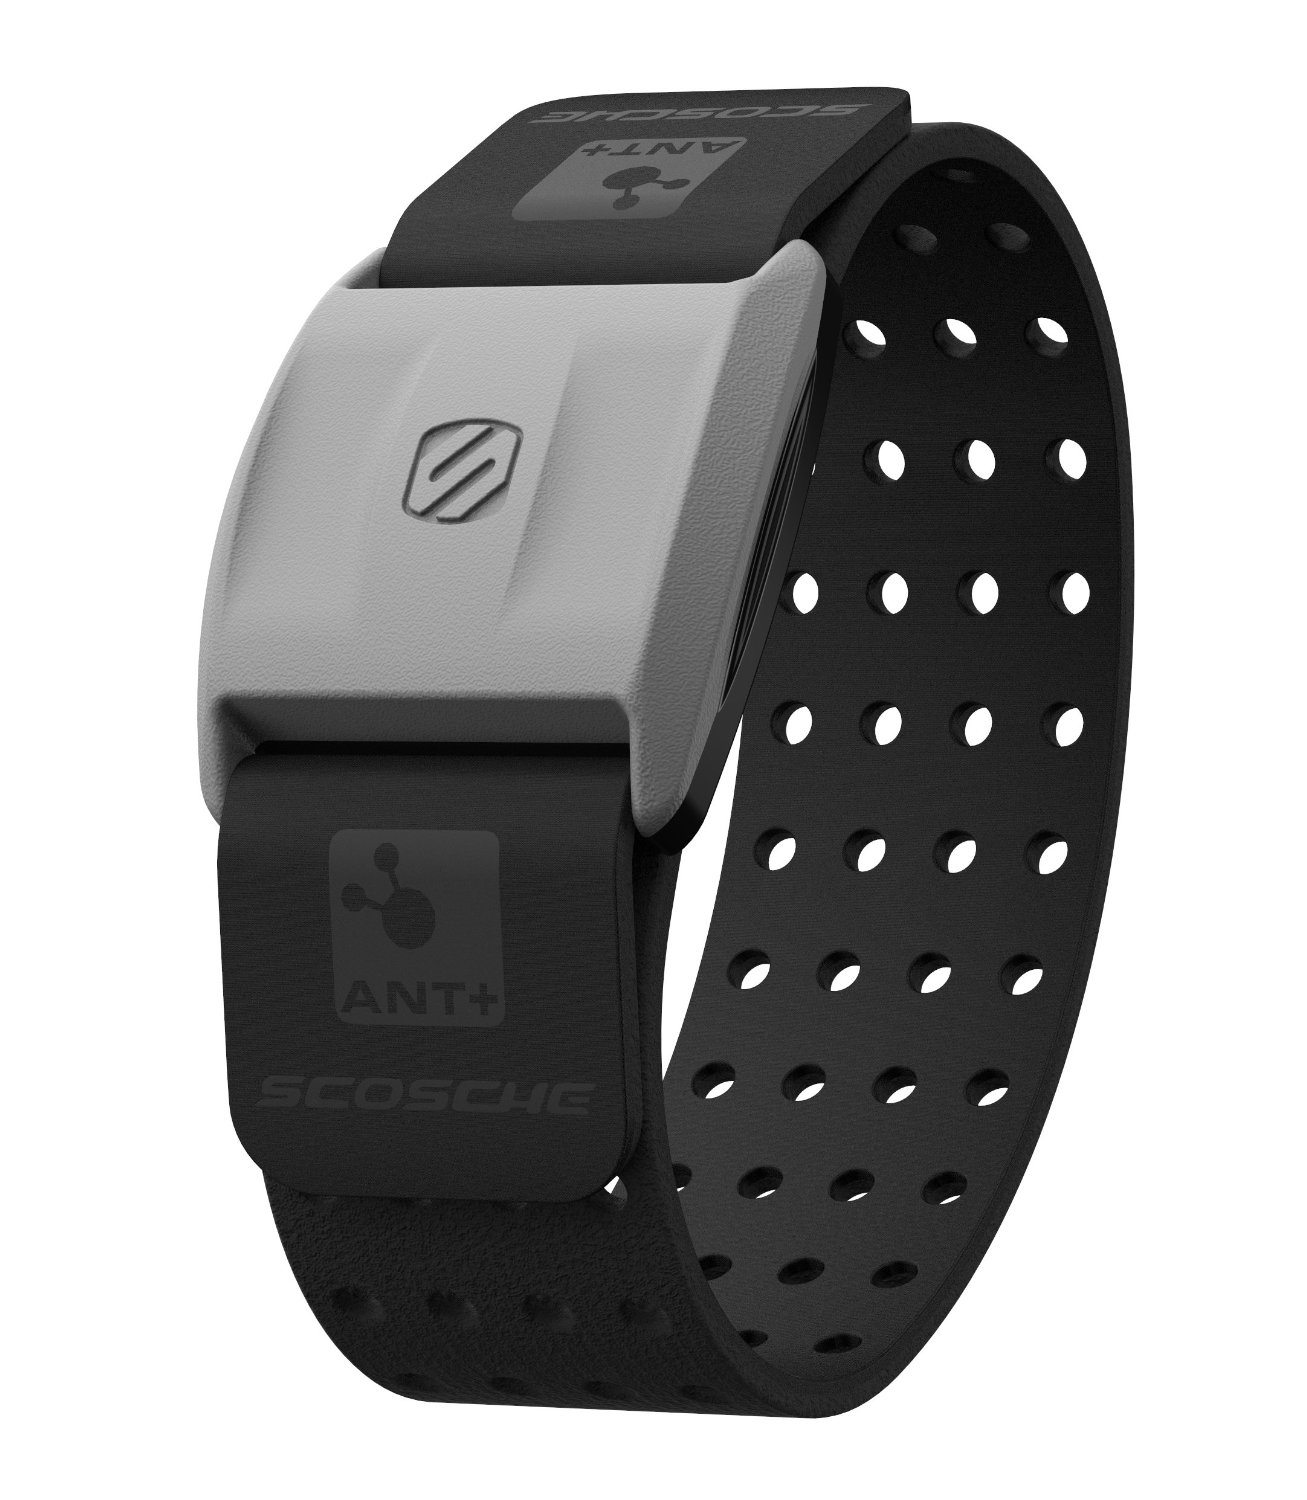 review scosche rhythm accurate heart rate monitoring from the arm 4 - Review: Scosche Rhythm+, accurate heart rate monitoring from the arm